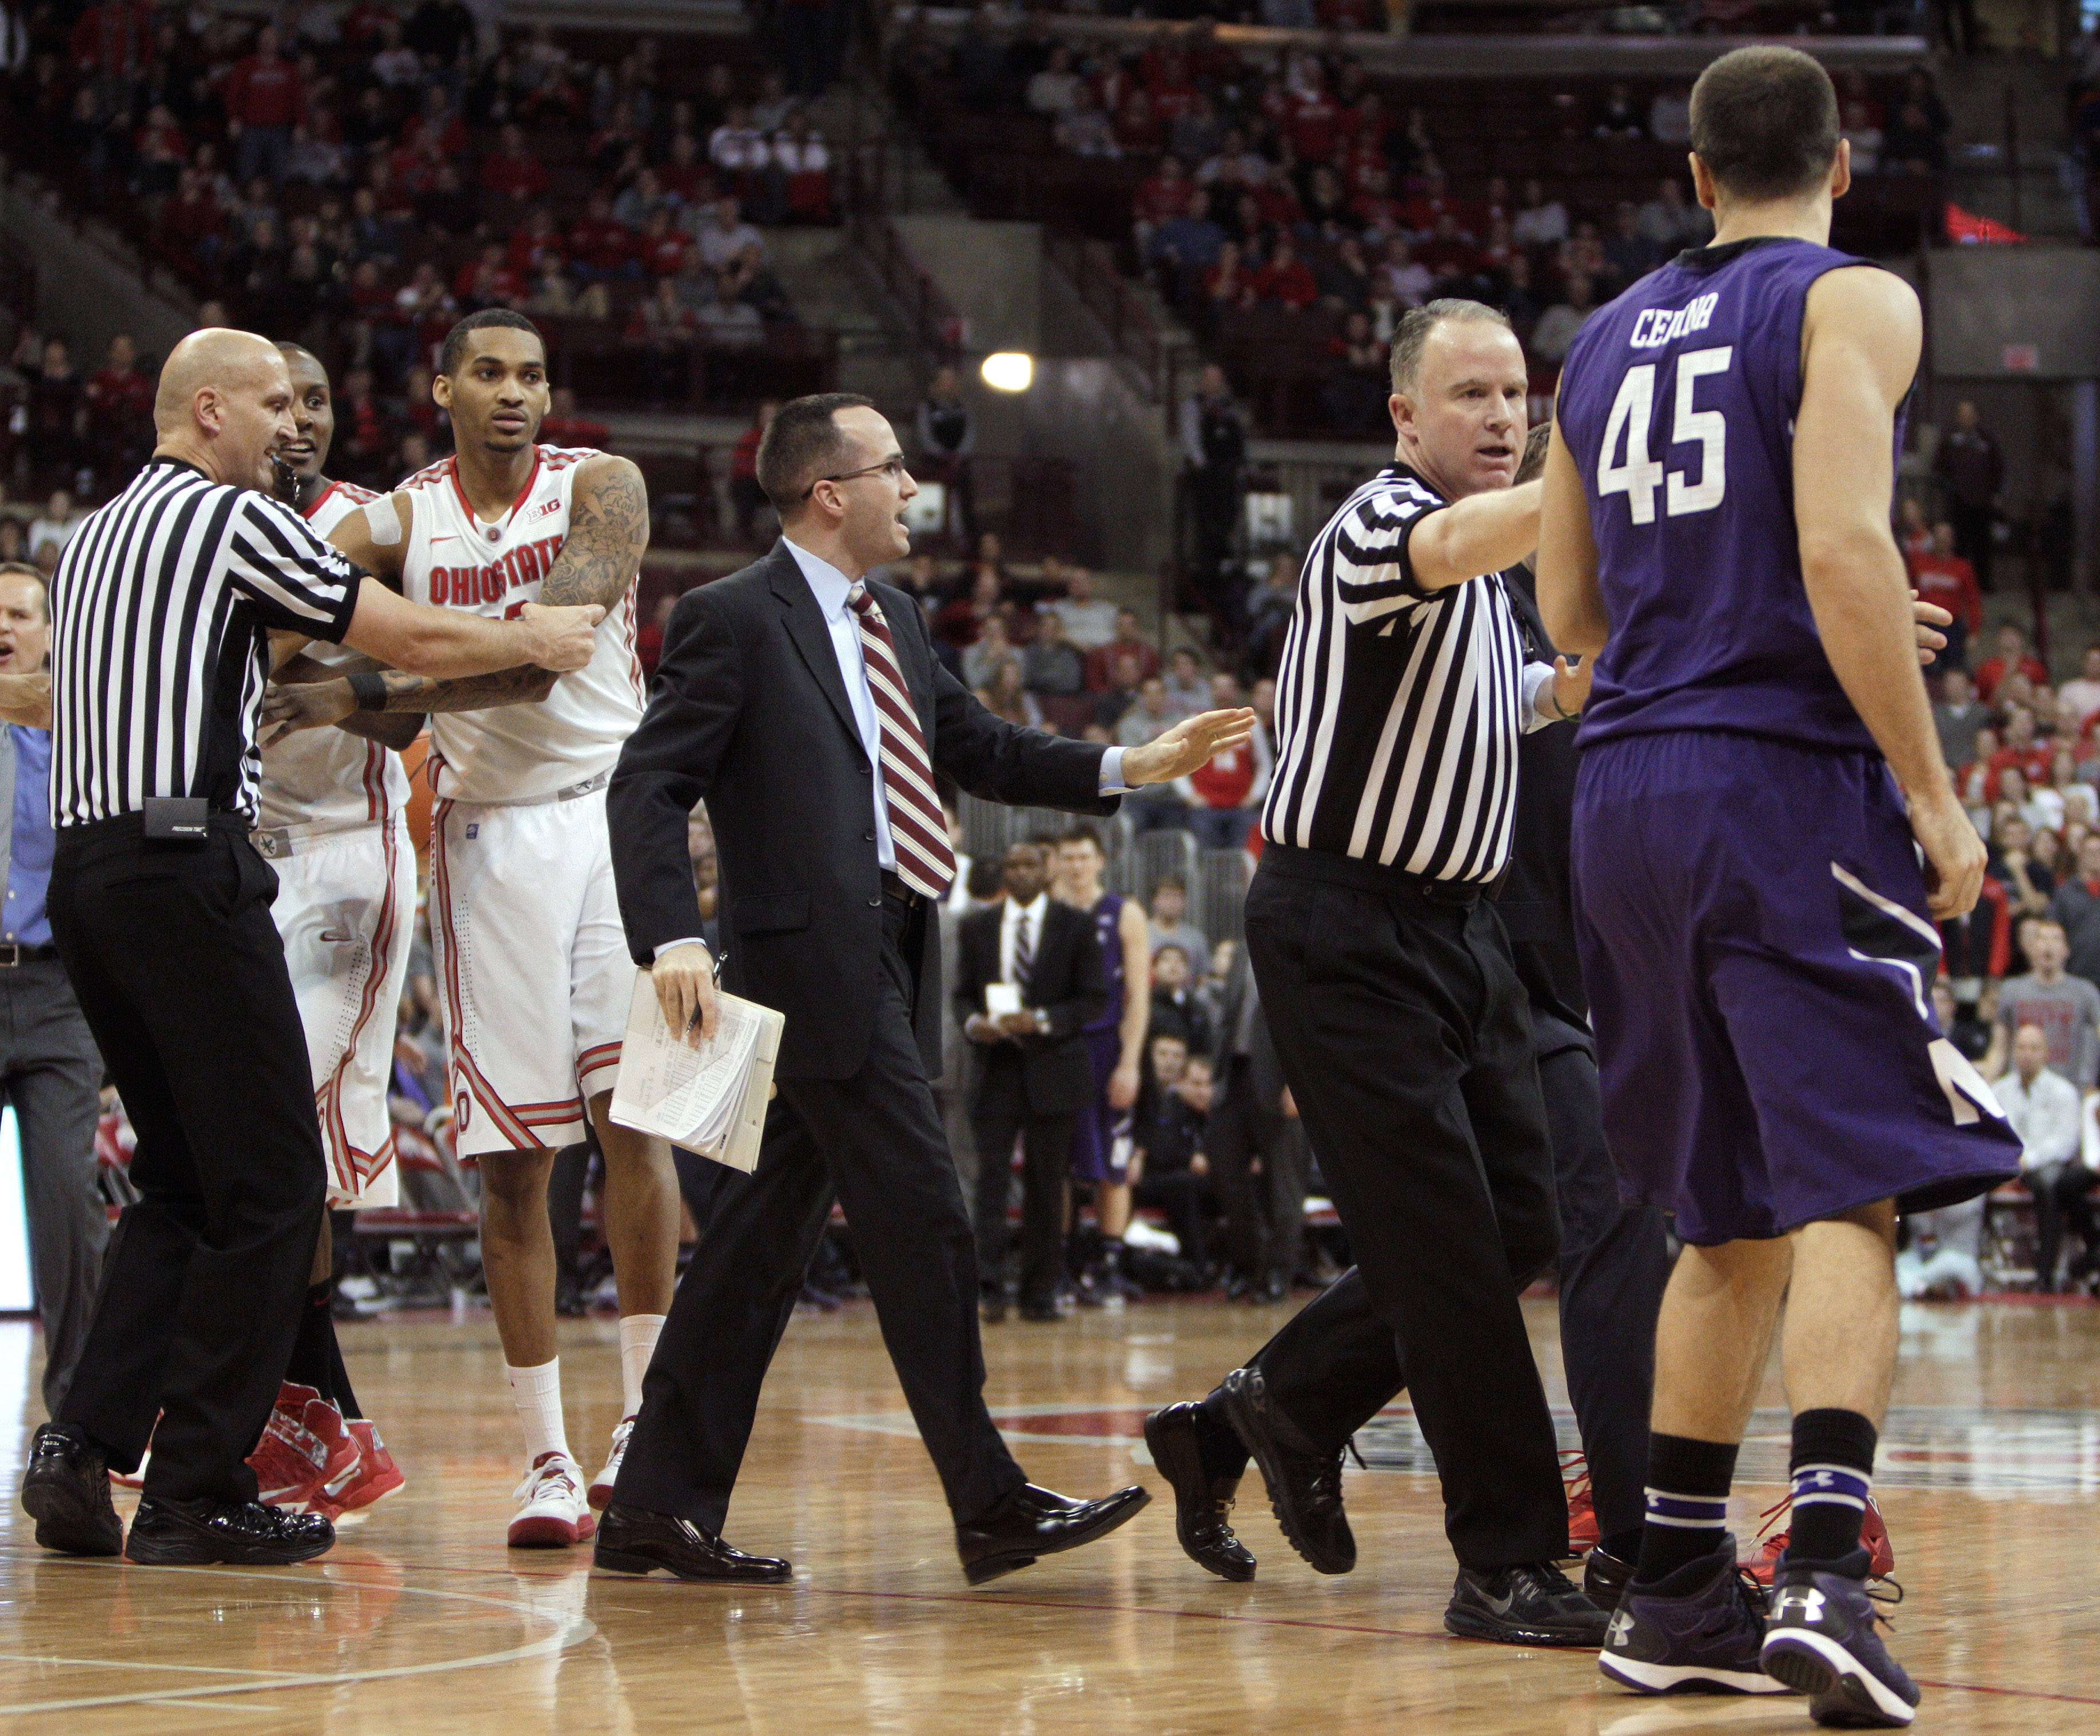 Referees and coaches separate Northwestern's Nikola Cerina (45) and Ohio State's LaQuinton Ross during a second-half scuffle in an NCAA college basketball game Wednesday, Feb. 19, 2014, in Columbus, Ohio. Cerina and Ross were both ejected from the game. Ohio State defeated Northwestern 76-60.